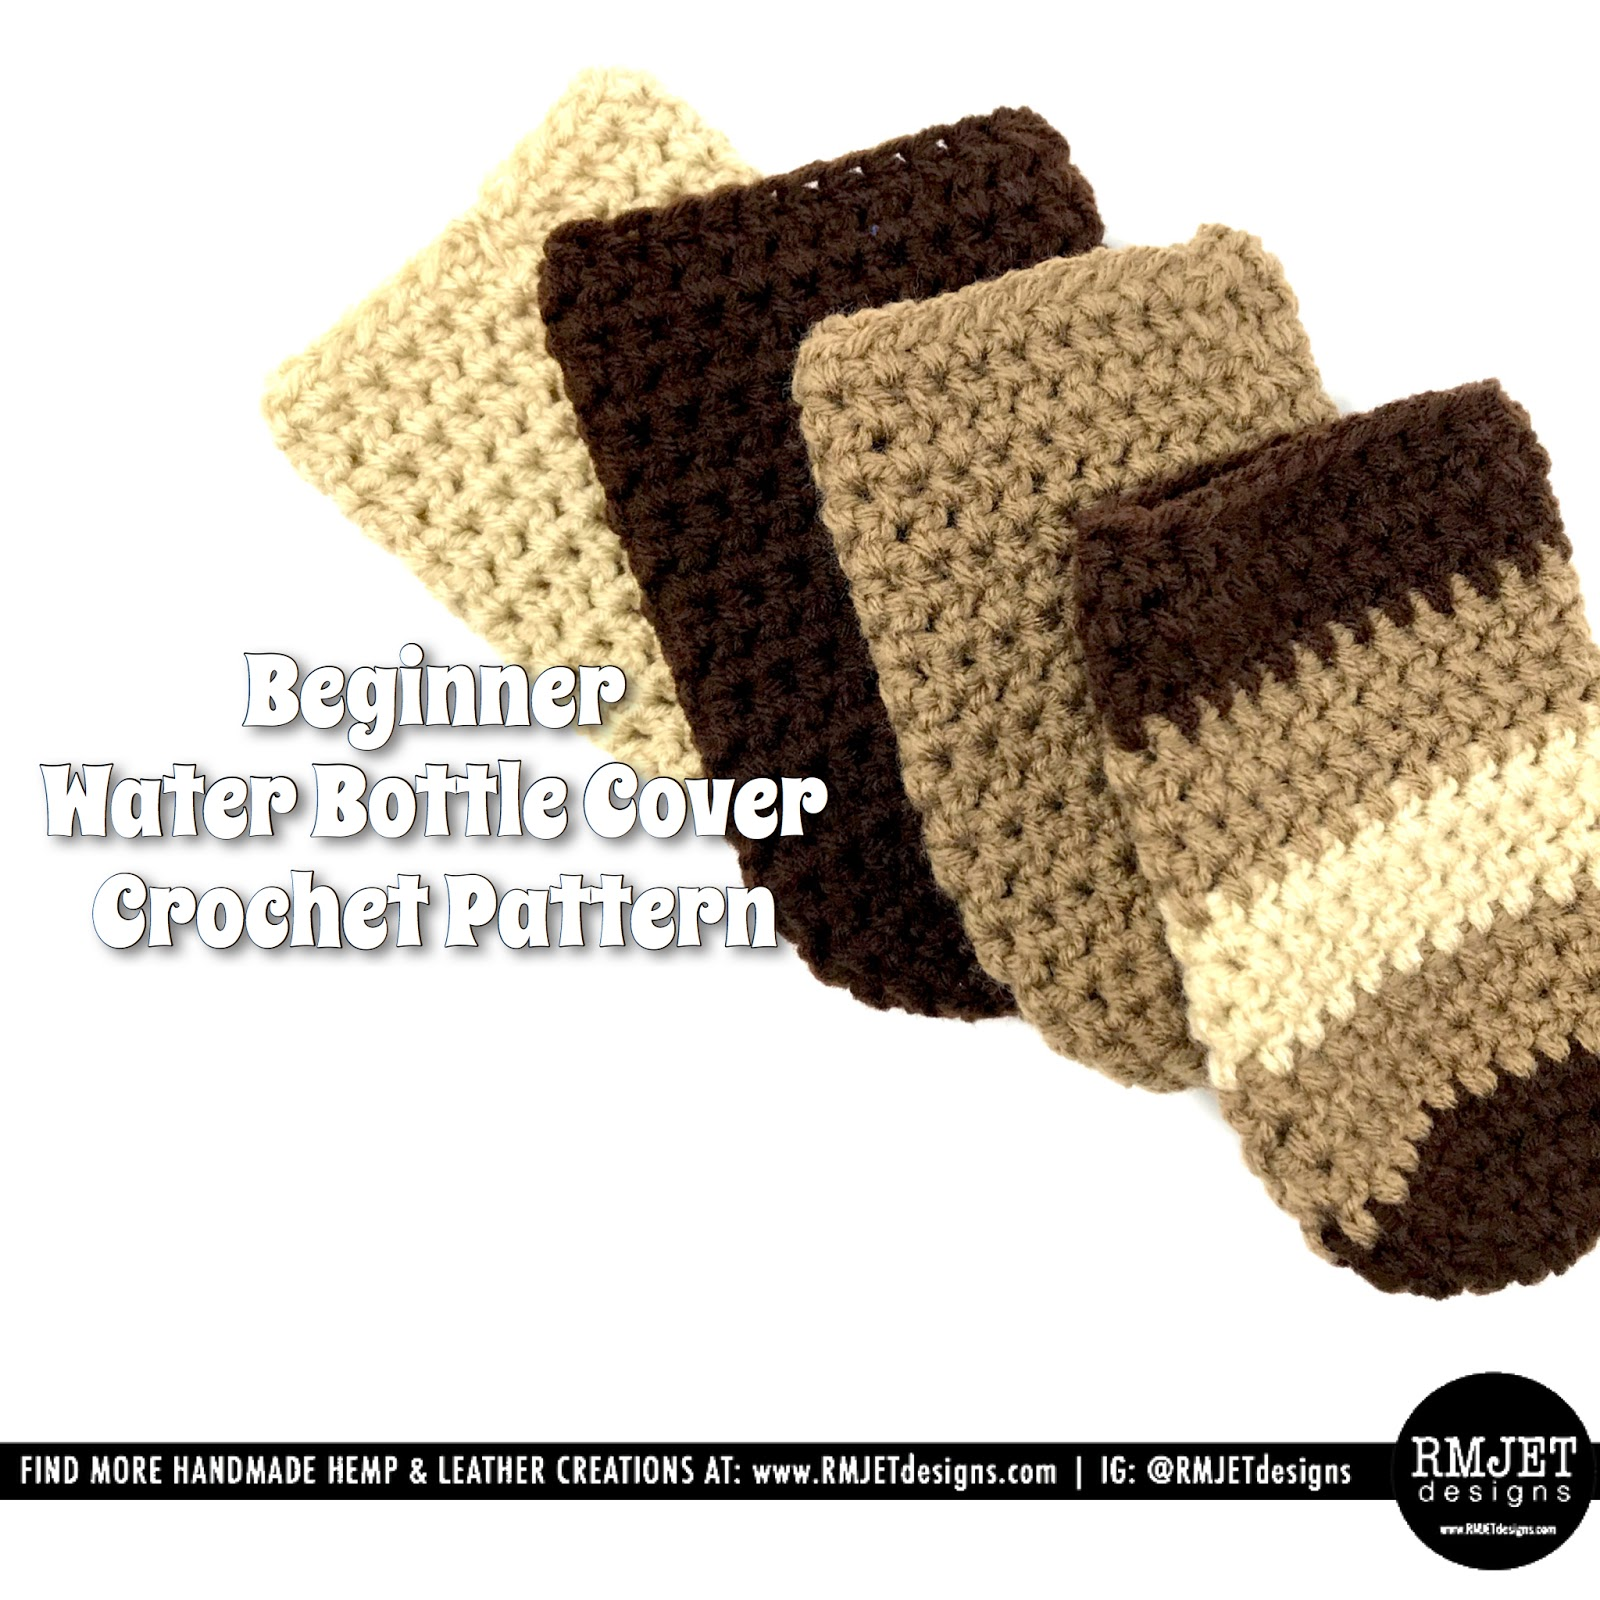 Free Water Bottle Cover Crochet Pattern by RMJETdesigns!